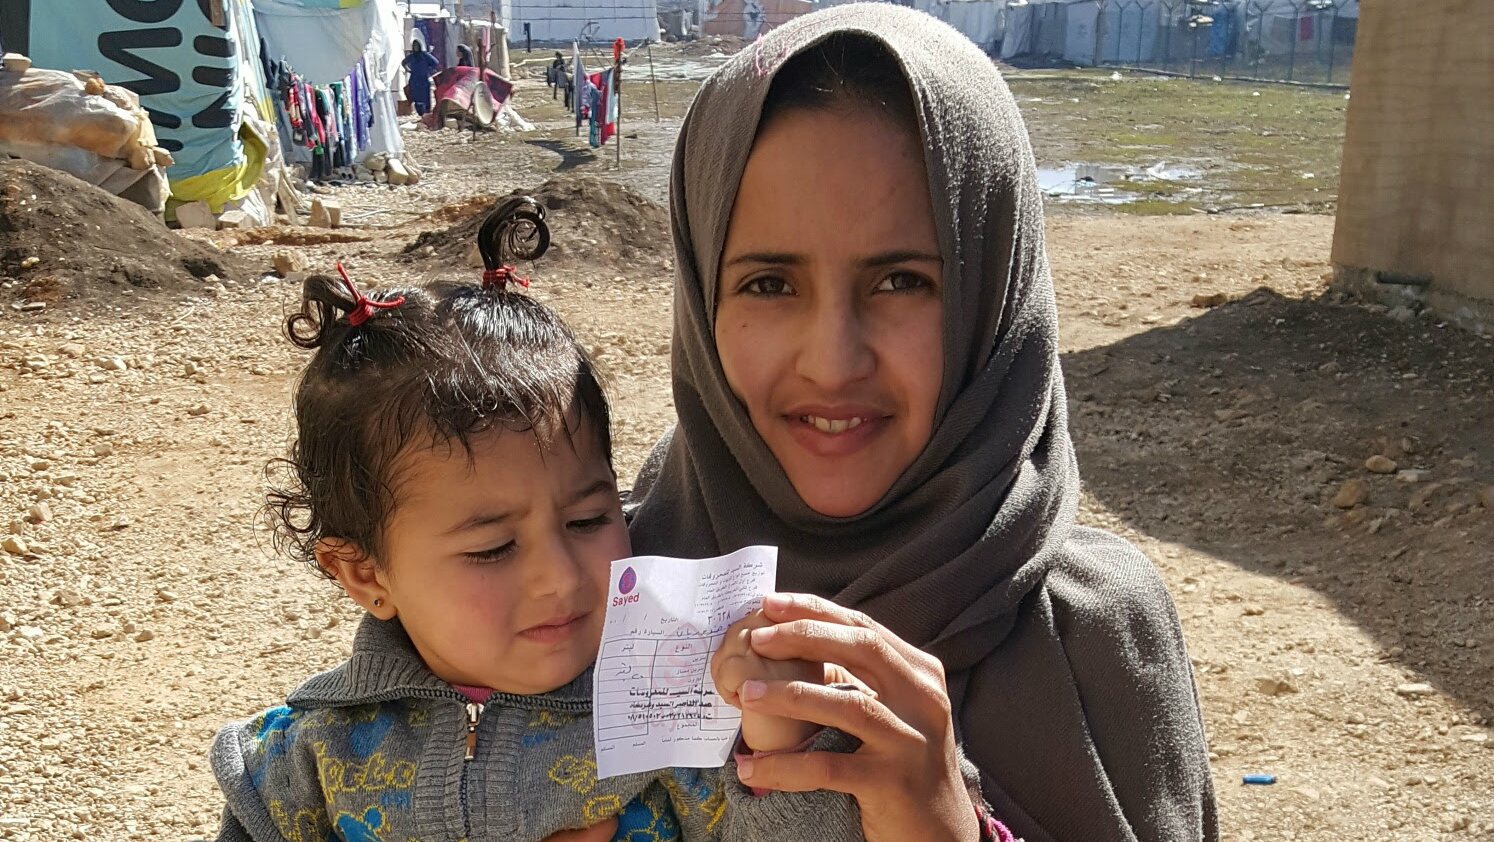 Photo: Humanwire Syria aid family with receipt